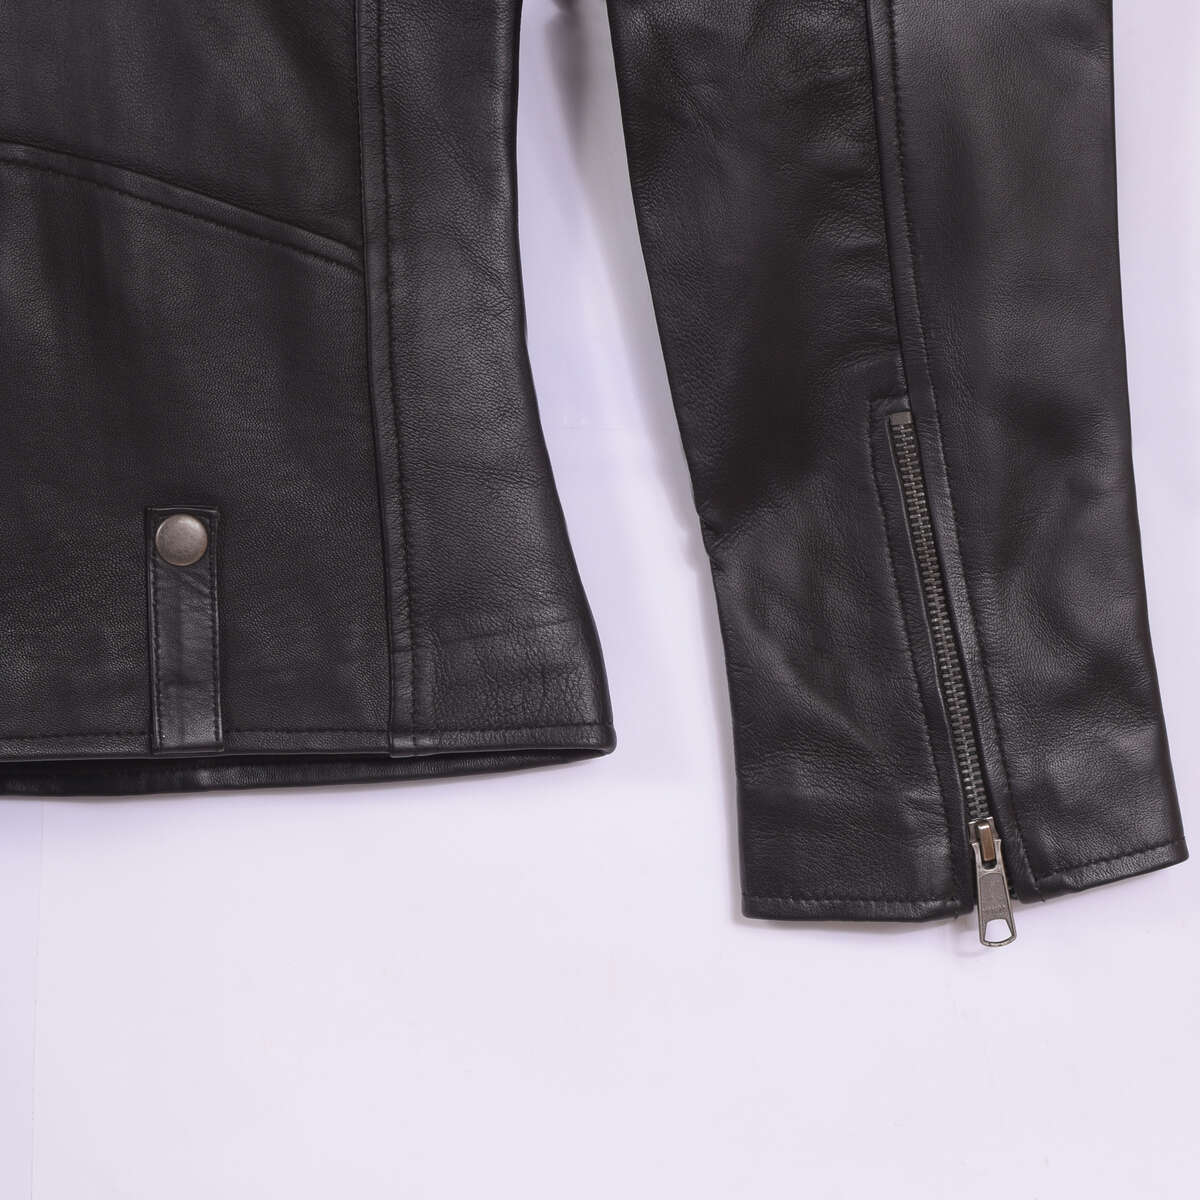 Cuff with Zipper Detail of Black Classic Leather Biker Jacket